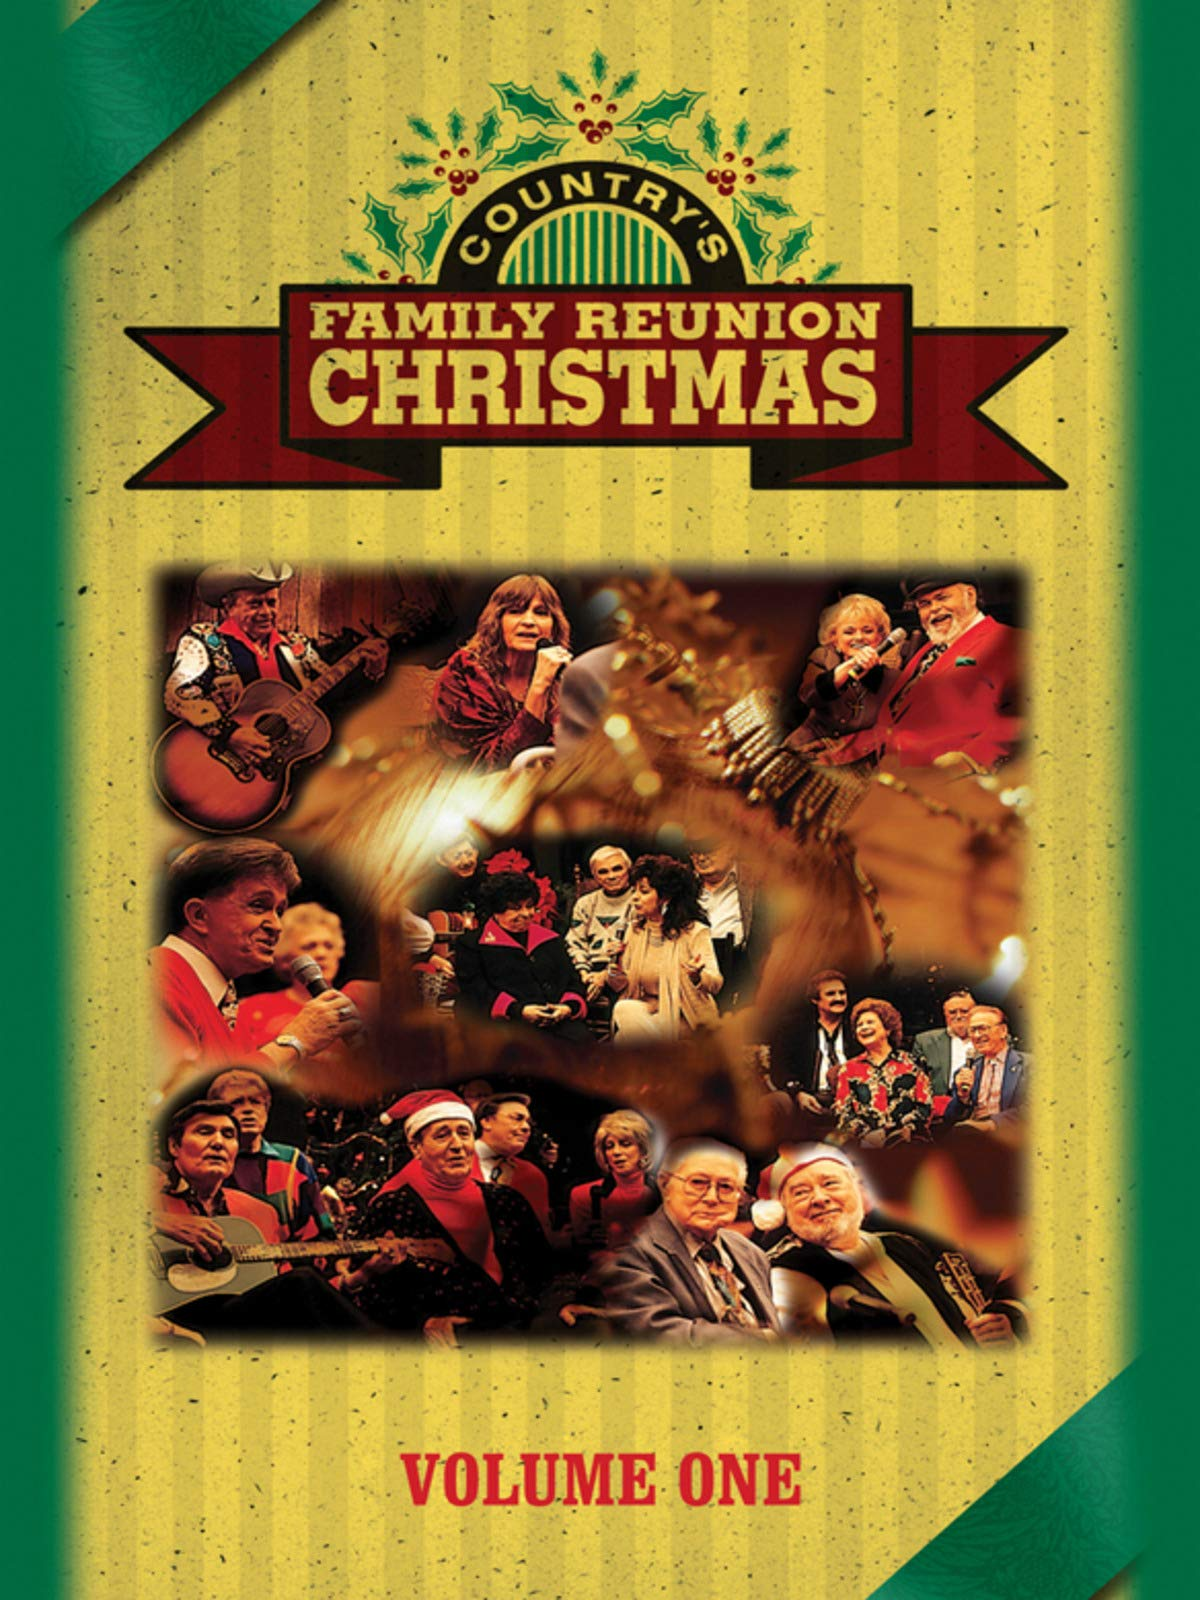 Country's Family Reunion Christmas on Amazon Prime Video UK